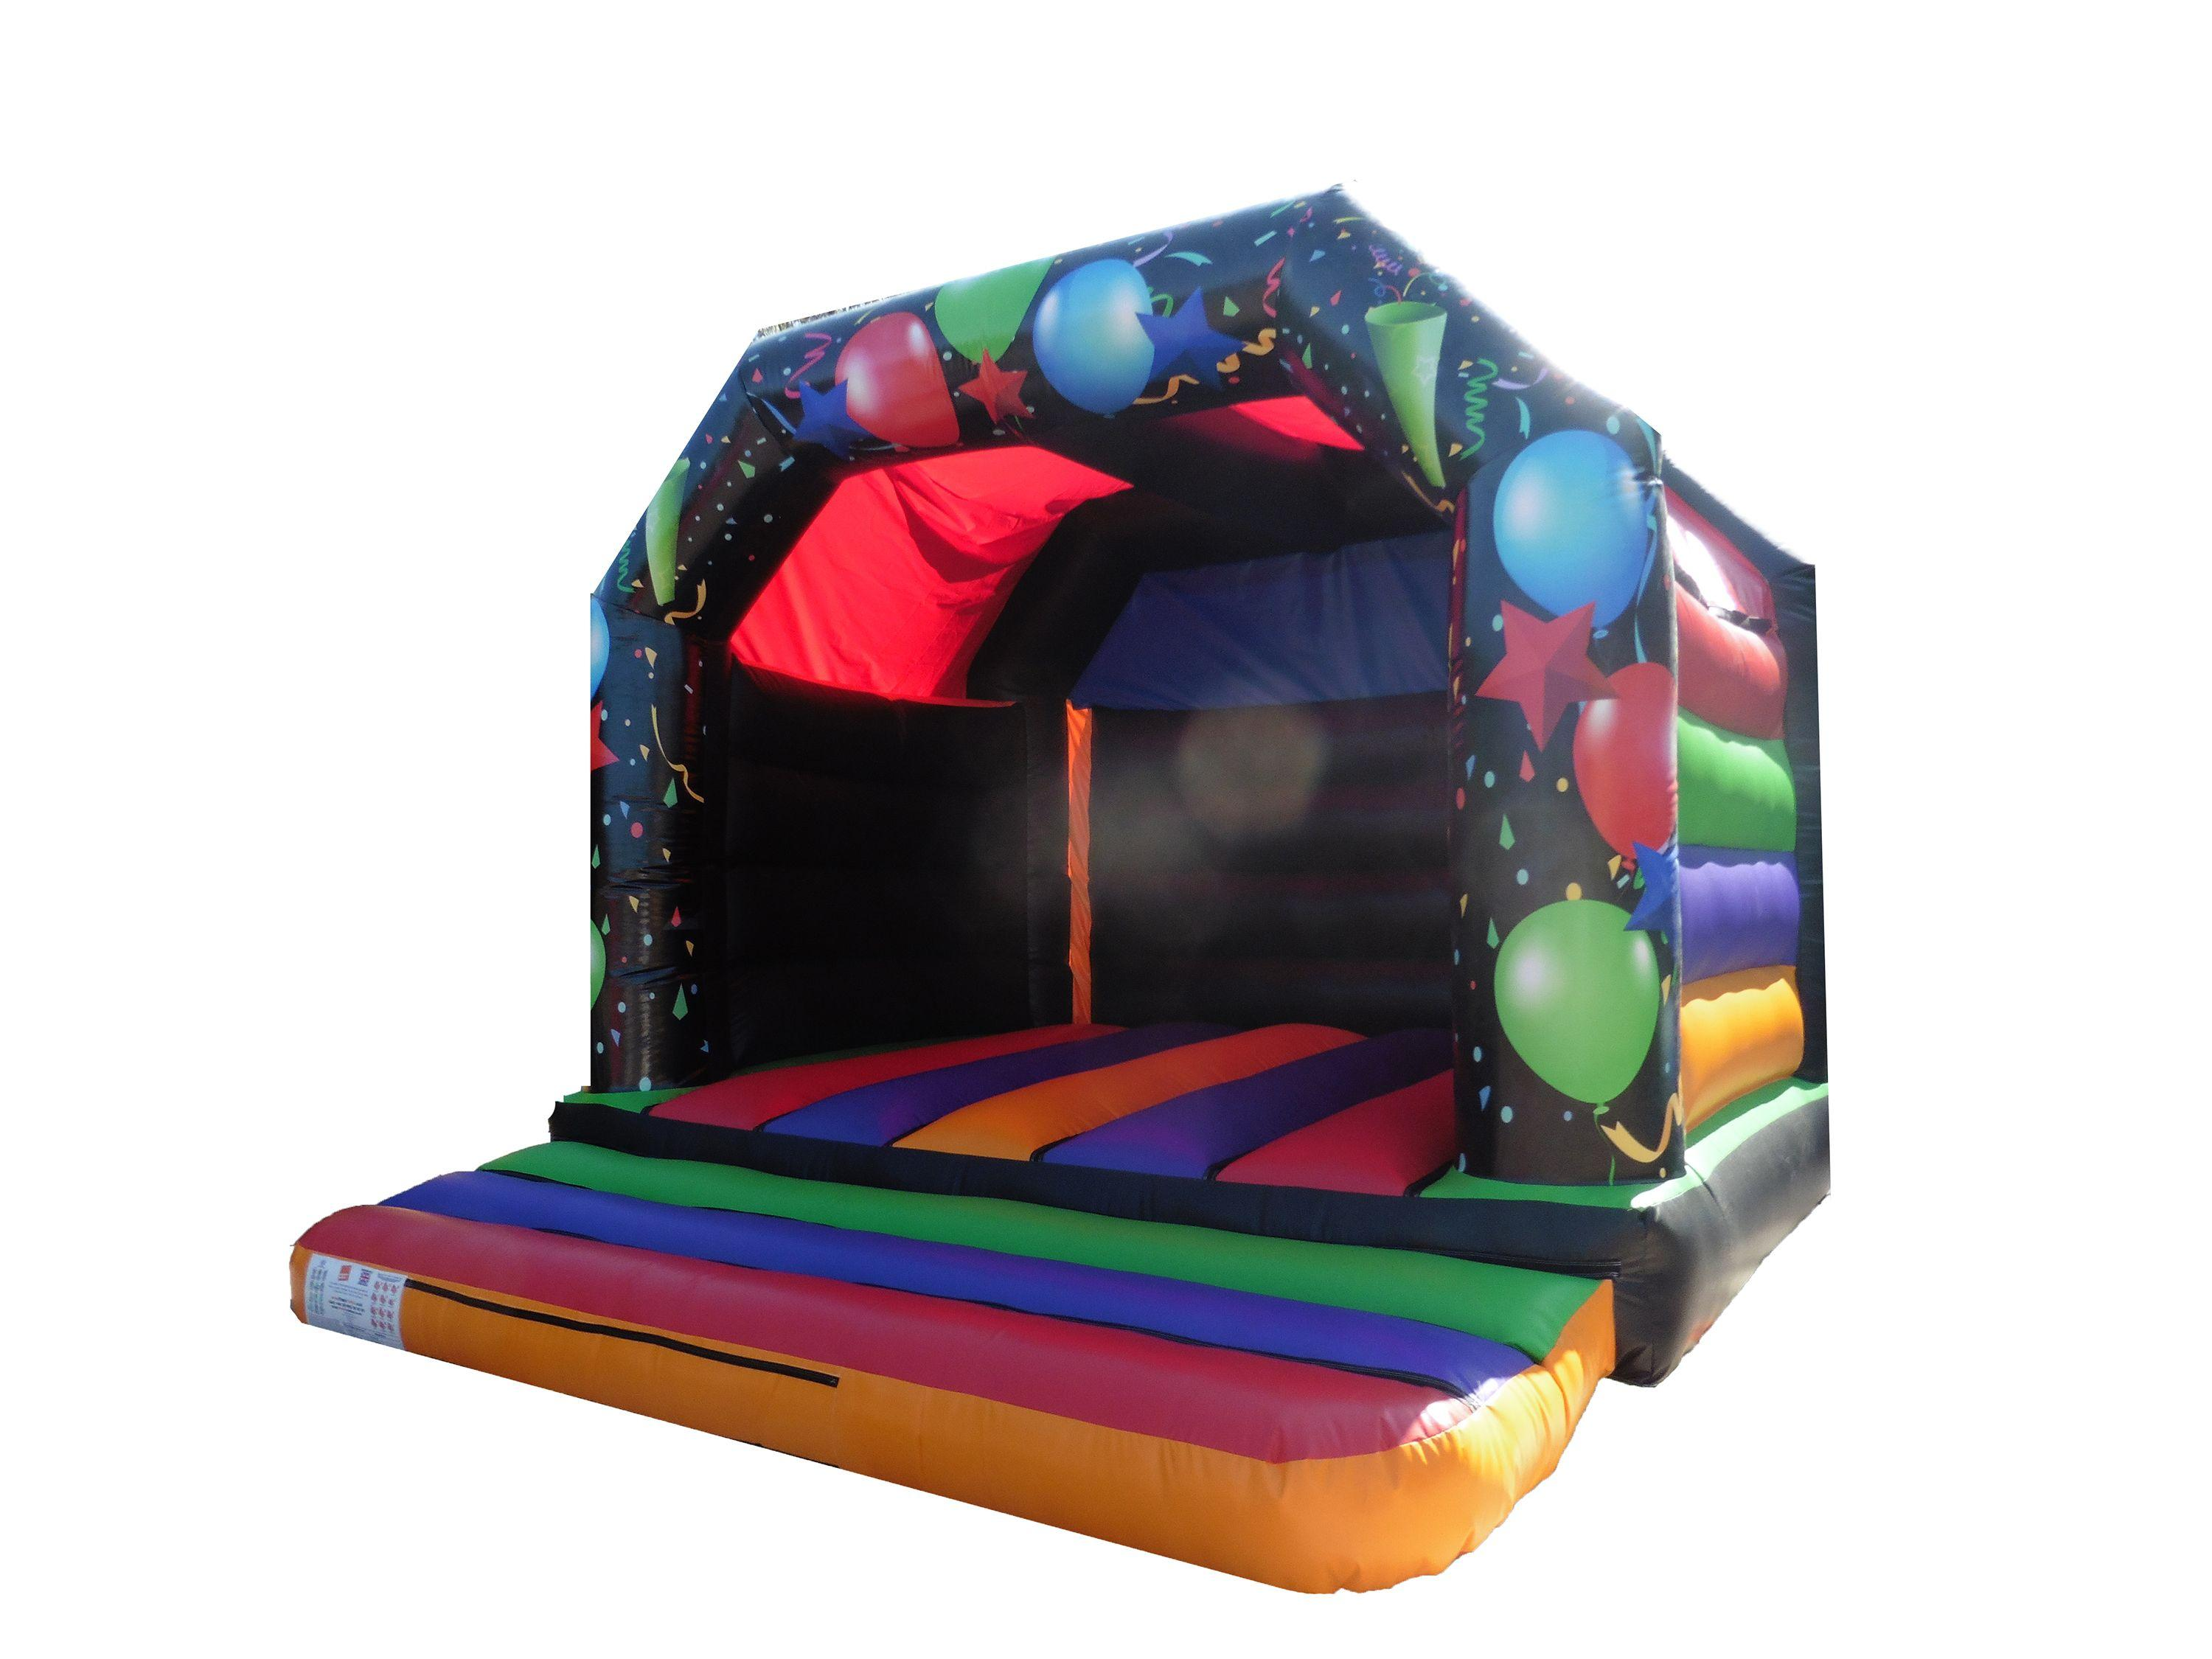 15x15 dhw adults party 2 compressor